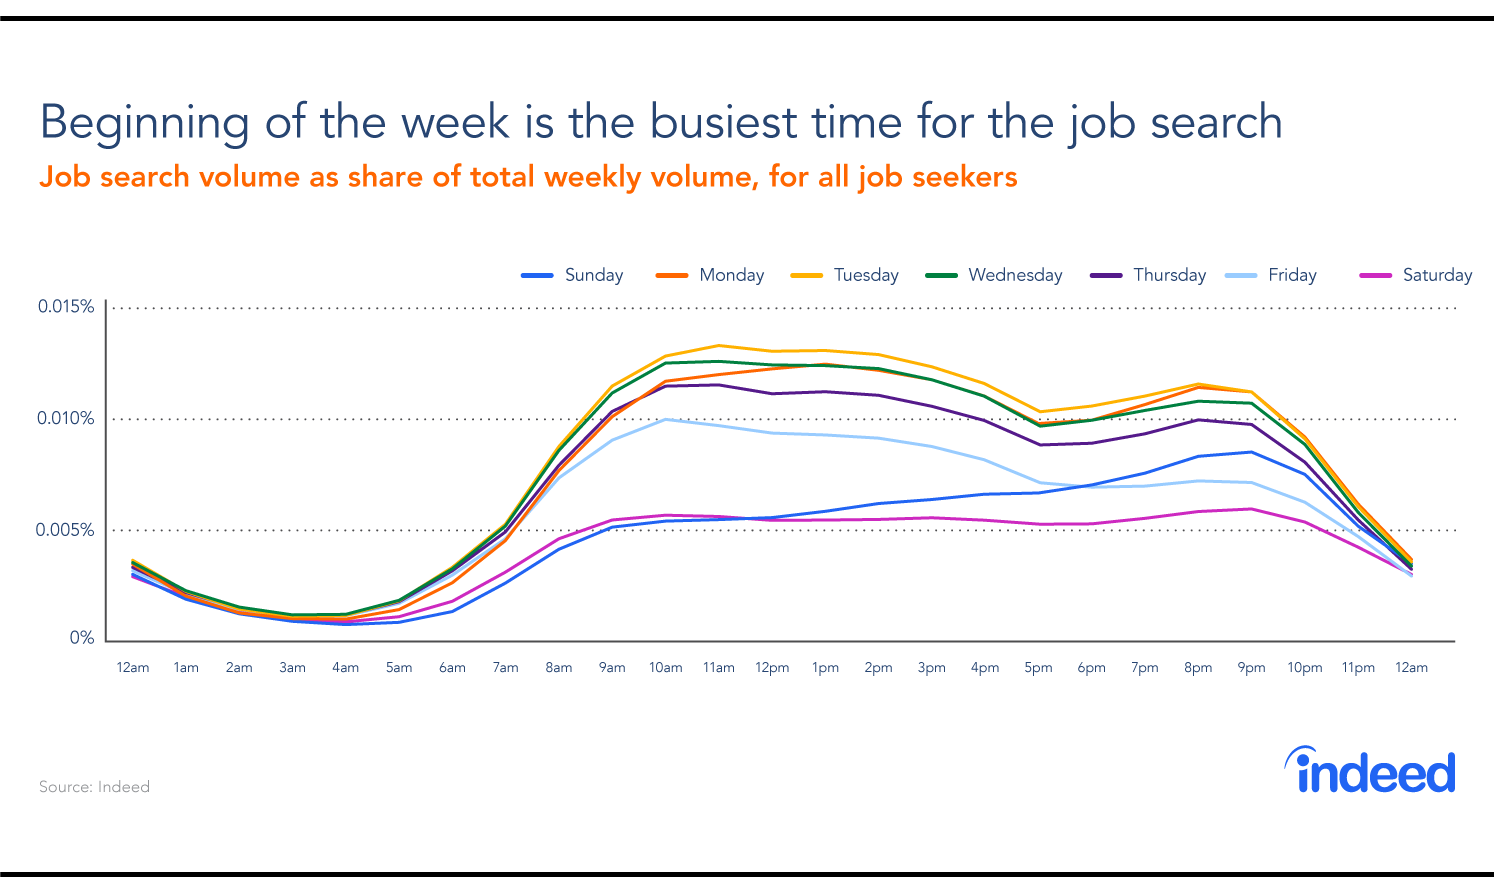 A graph showing the busiest days of the week and times of day for job searches.